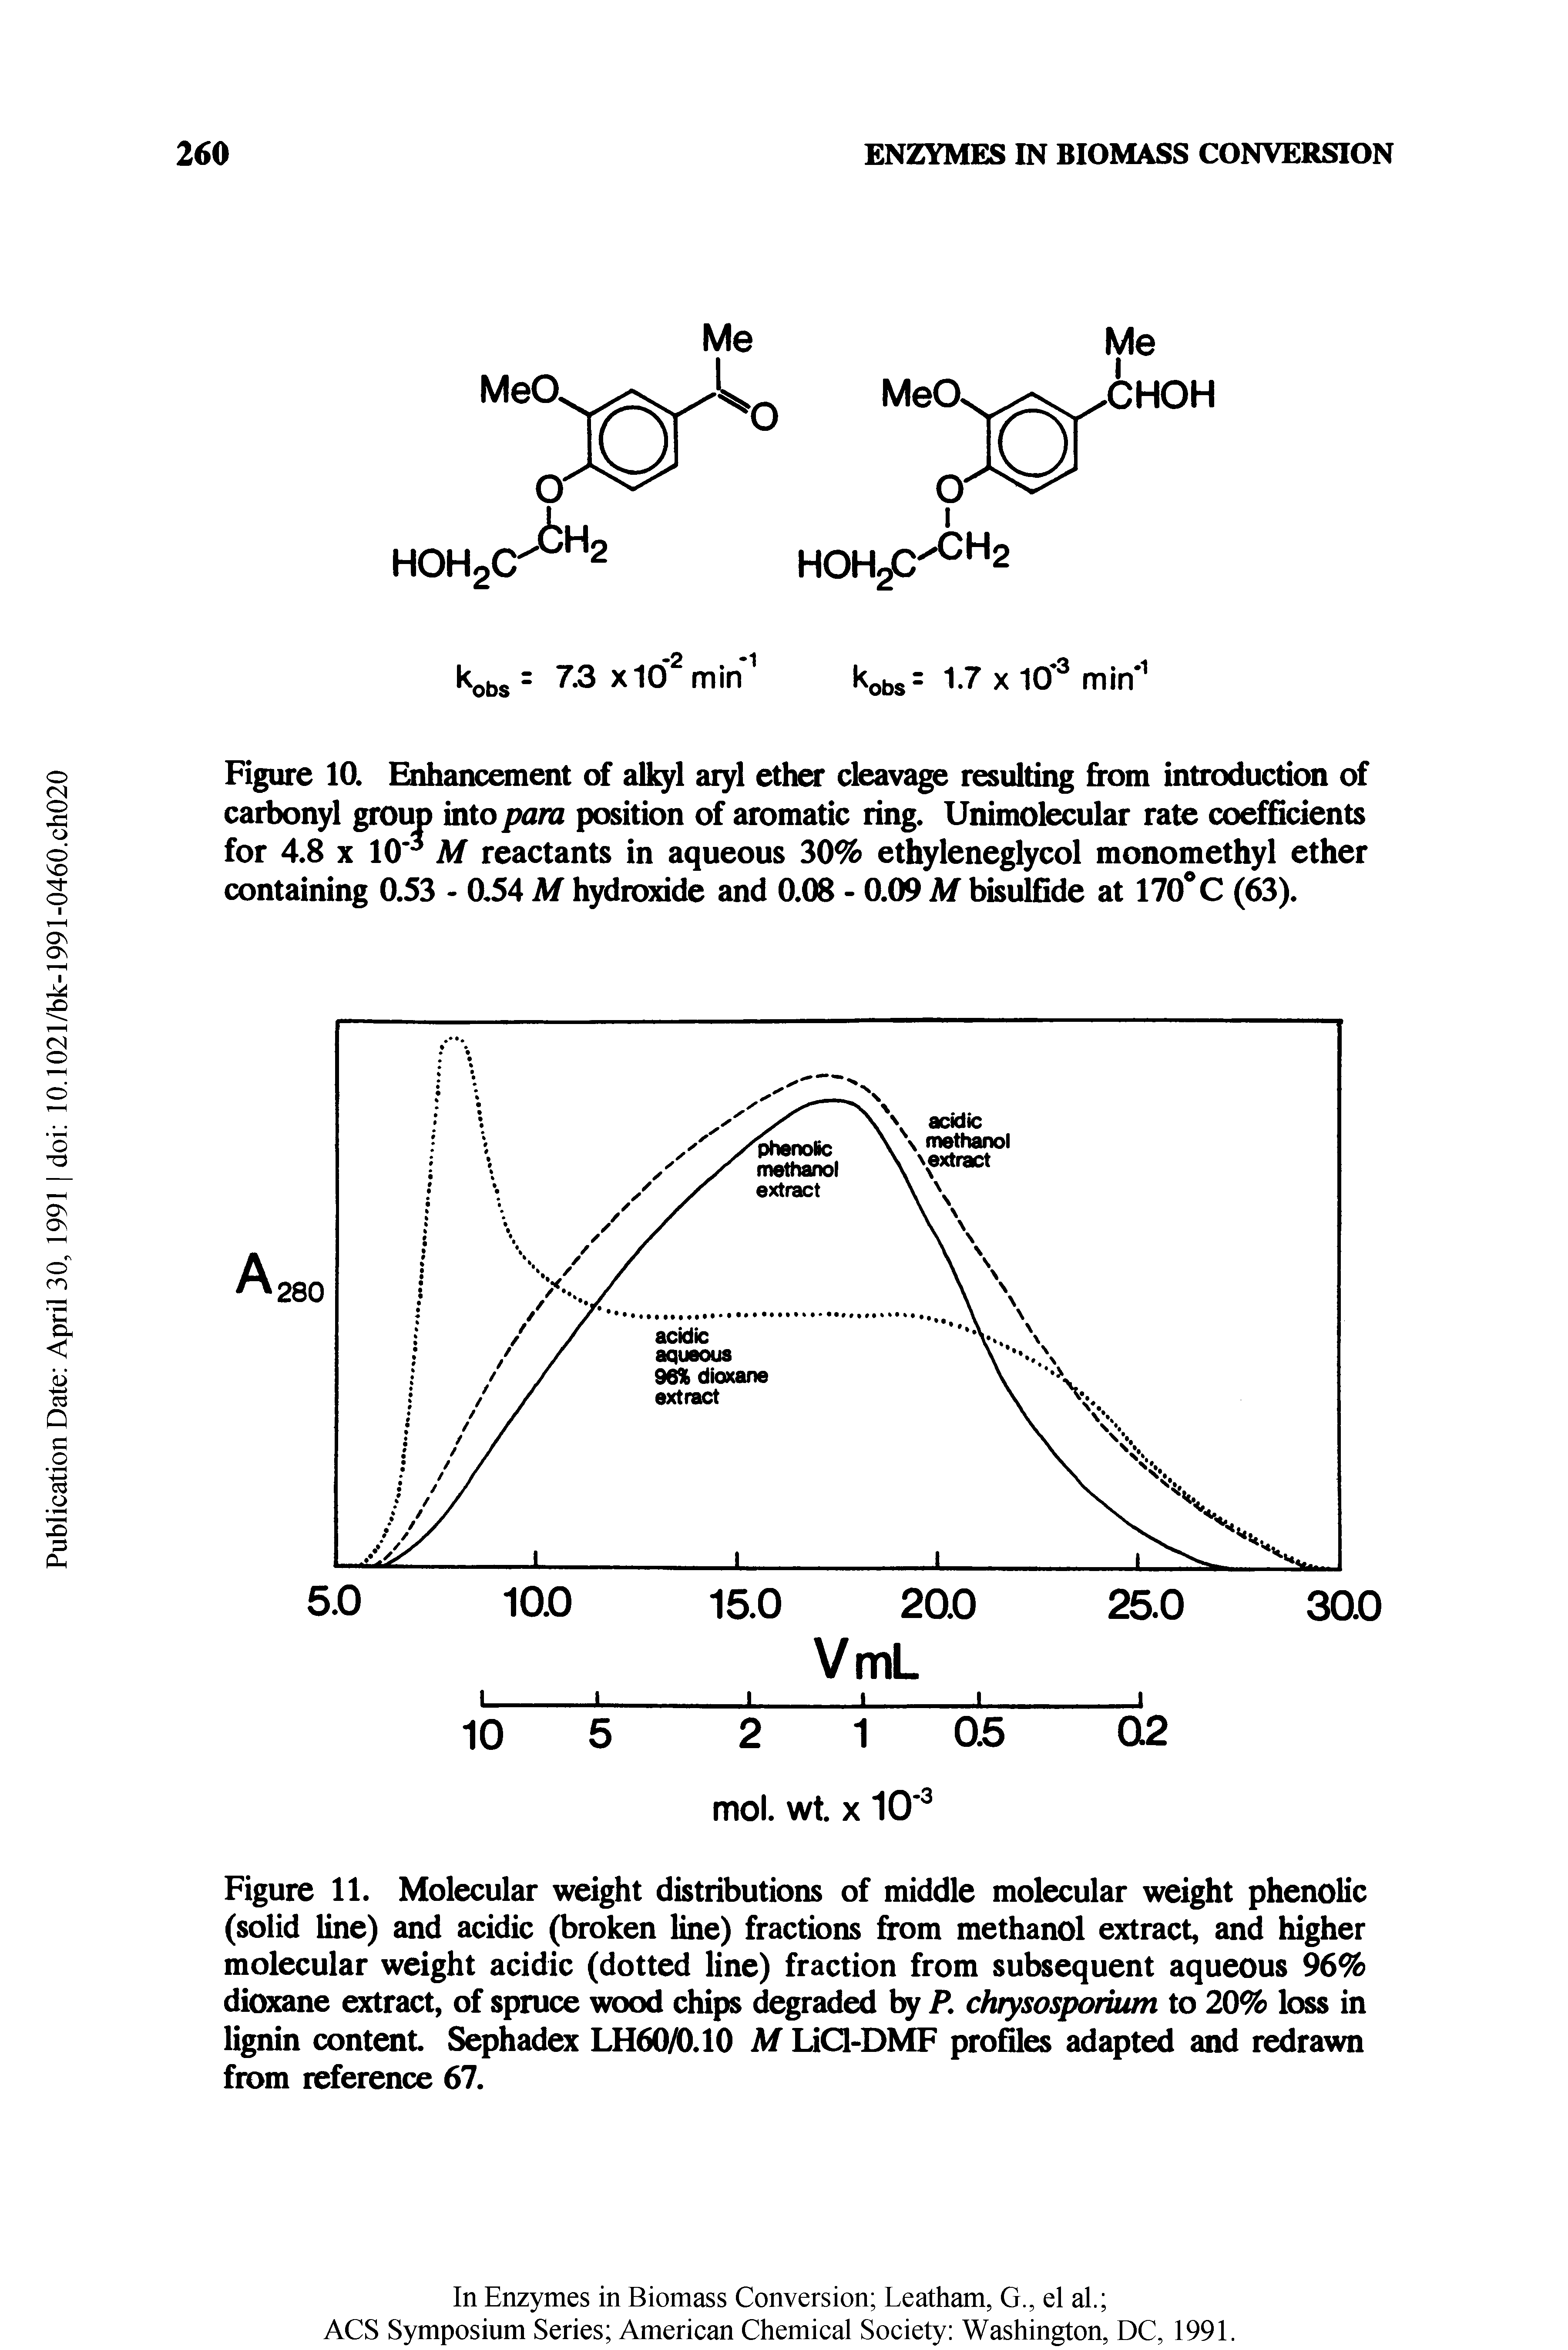 Figure 10. Enhancement of all l aryl ether cleavage resulting from introduction of carbonyl group into para position of aromatic ring. Unimolecular rate coefficients for 4.8 X 10 M reactants in aqueous 30% ethyleneglycol monomethyl ether containing 0.53 - 0.54 M hydroxide and 0.08 - 0.09 M bisulfide at 170 C (63).